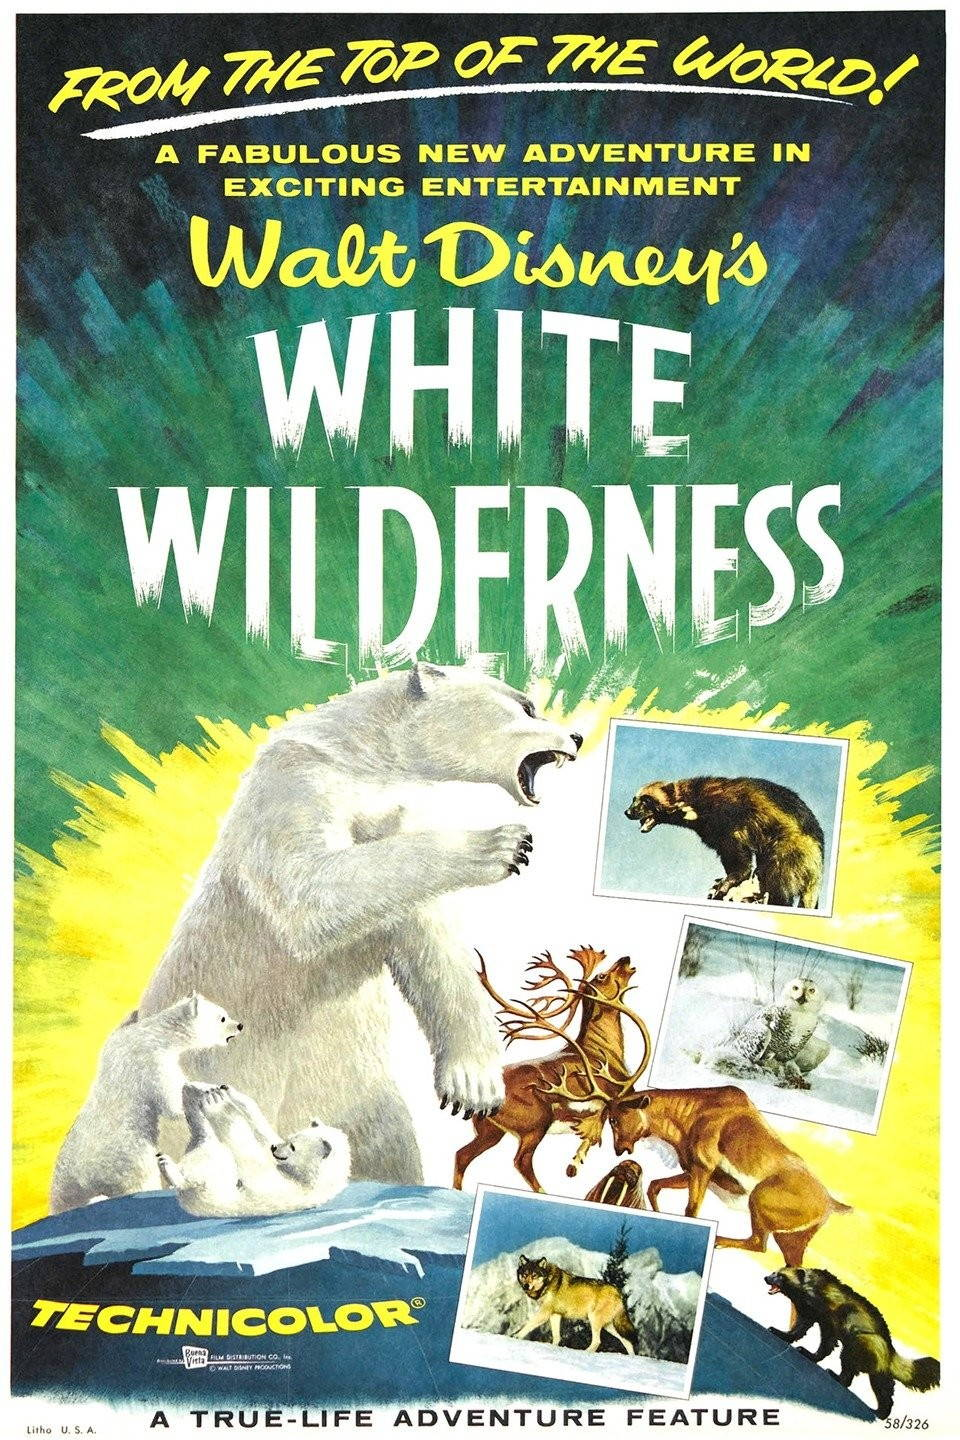 White Wilderness filmmakers offscreen forced lemmings off a cliff for the sake of drama but presented the film as true to life.